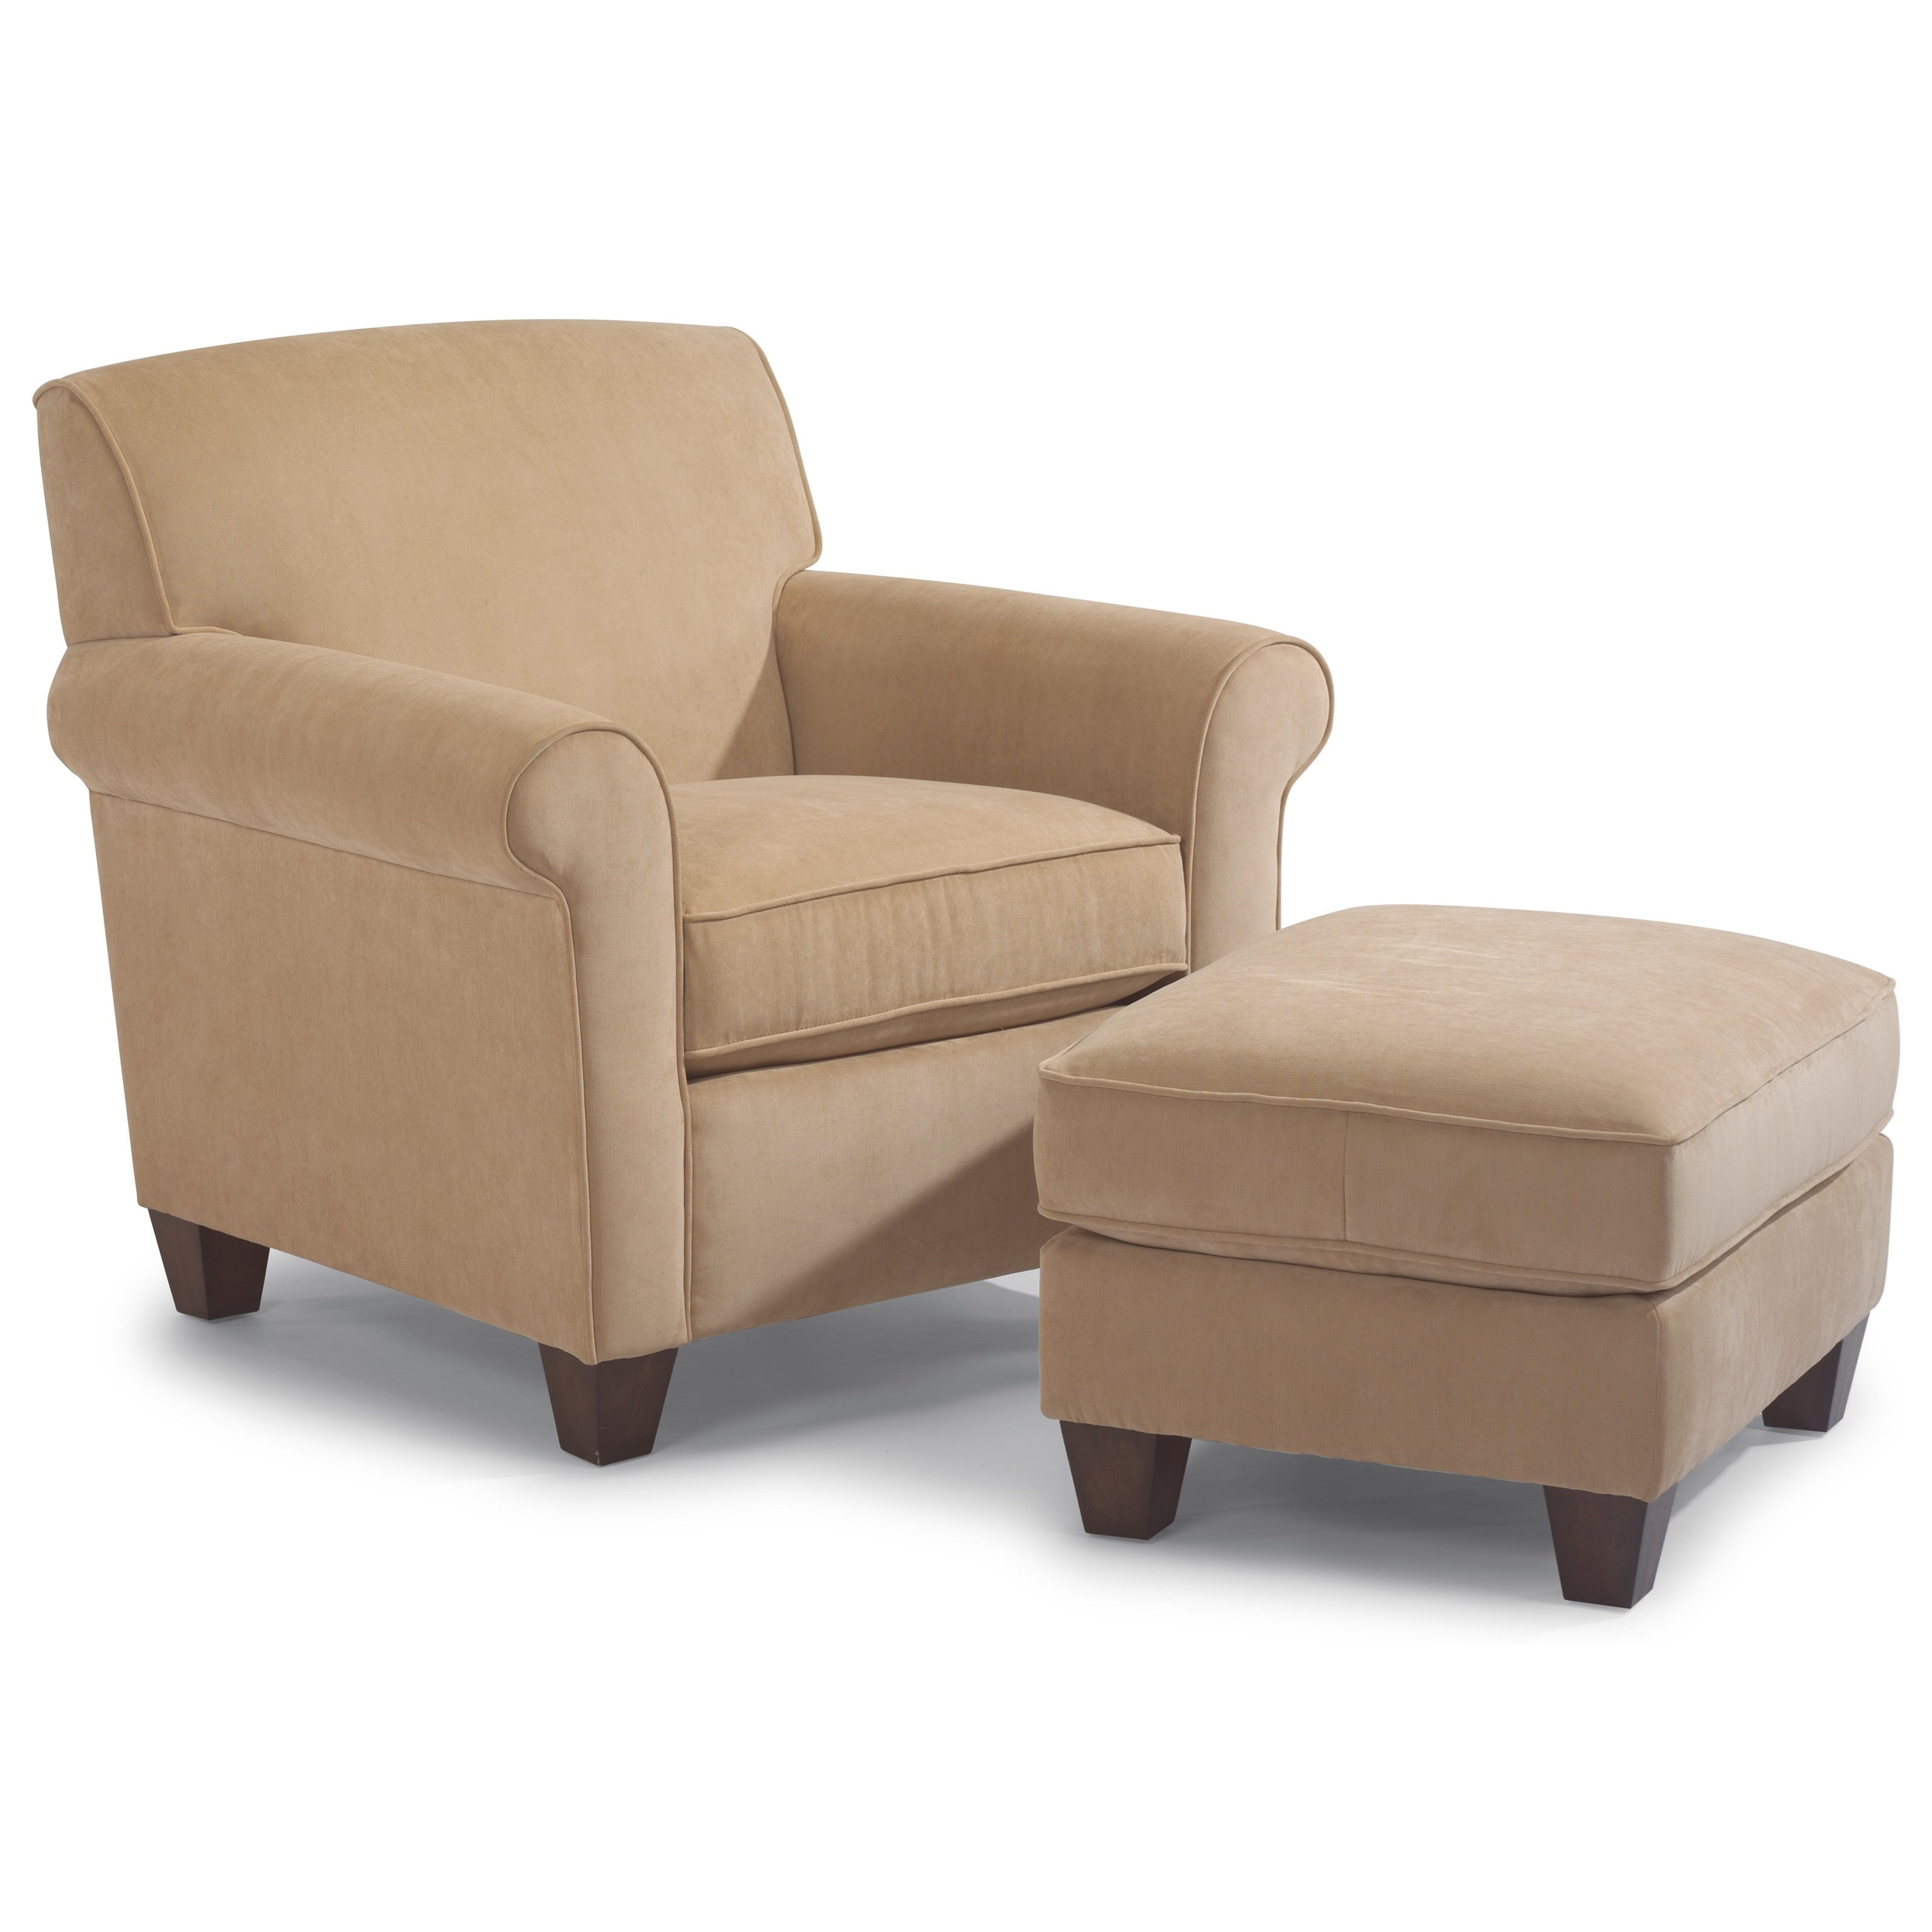 Flexsteel Dana Chair And Ottoman   Item Number: 5990 08+10